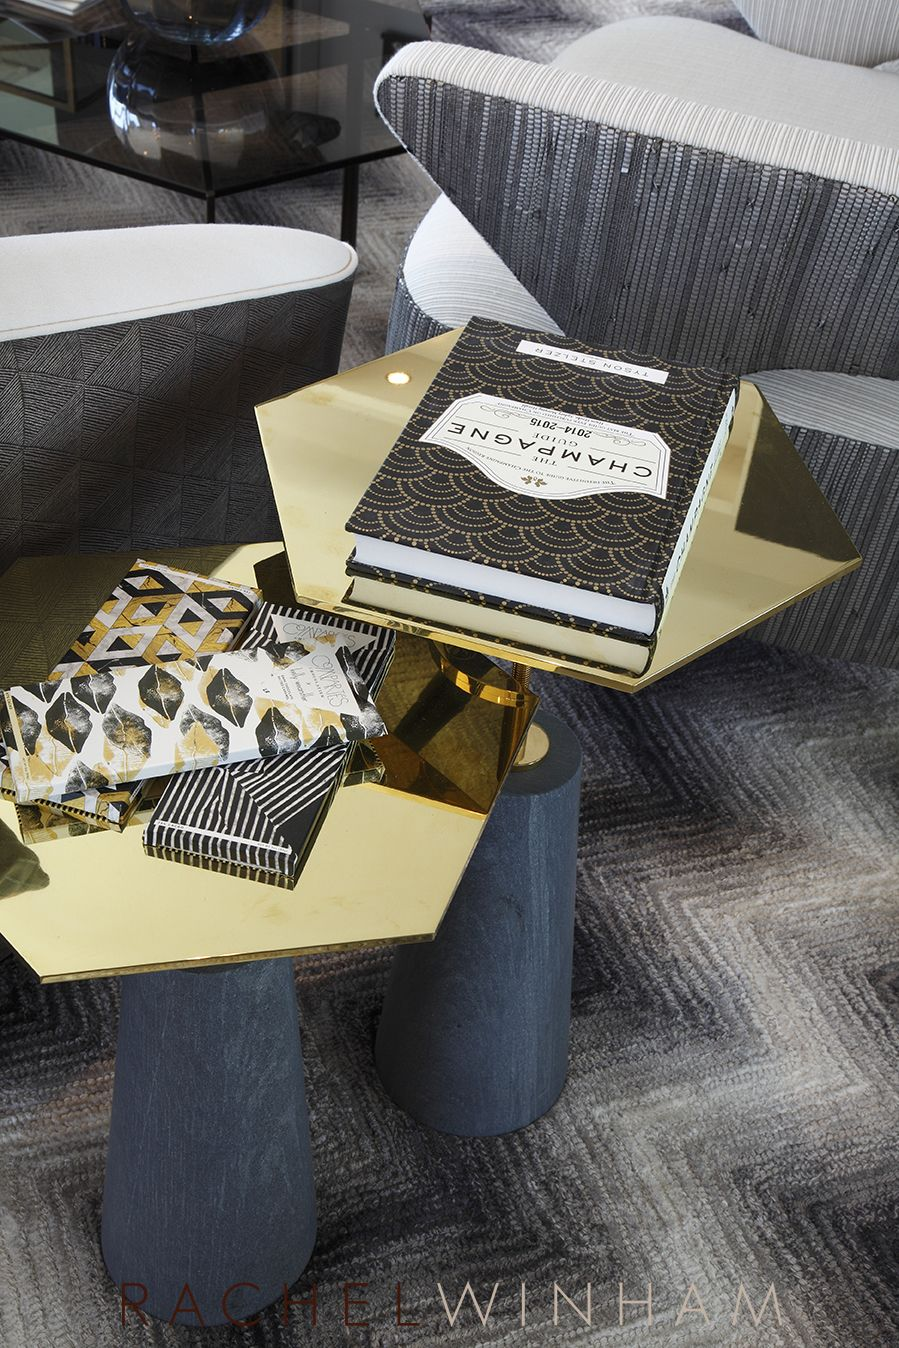 Hexagonal Brass Side Tables Recently Used By Rachel Winham Interior Design  At A Project At Southbank